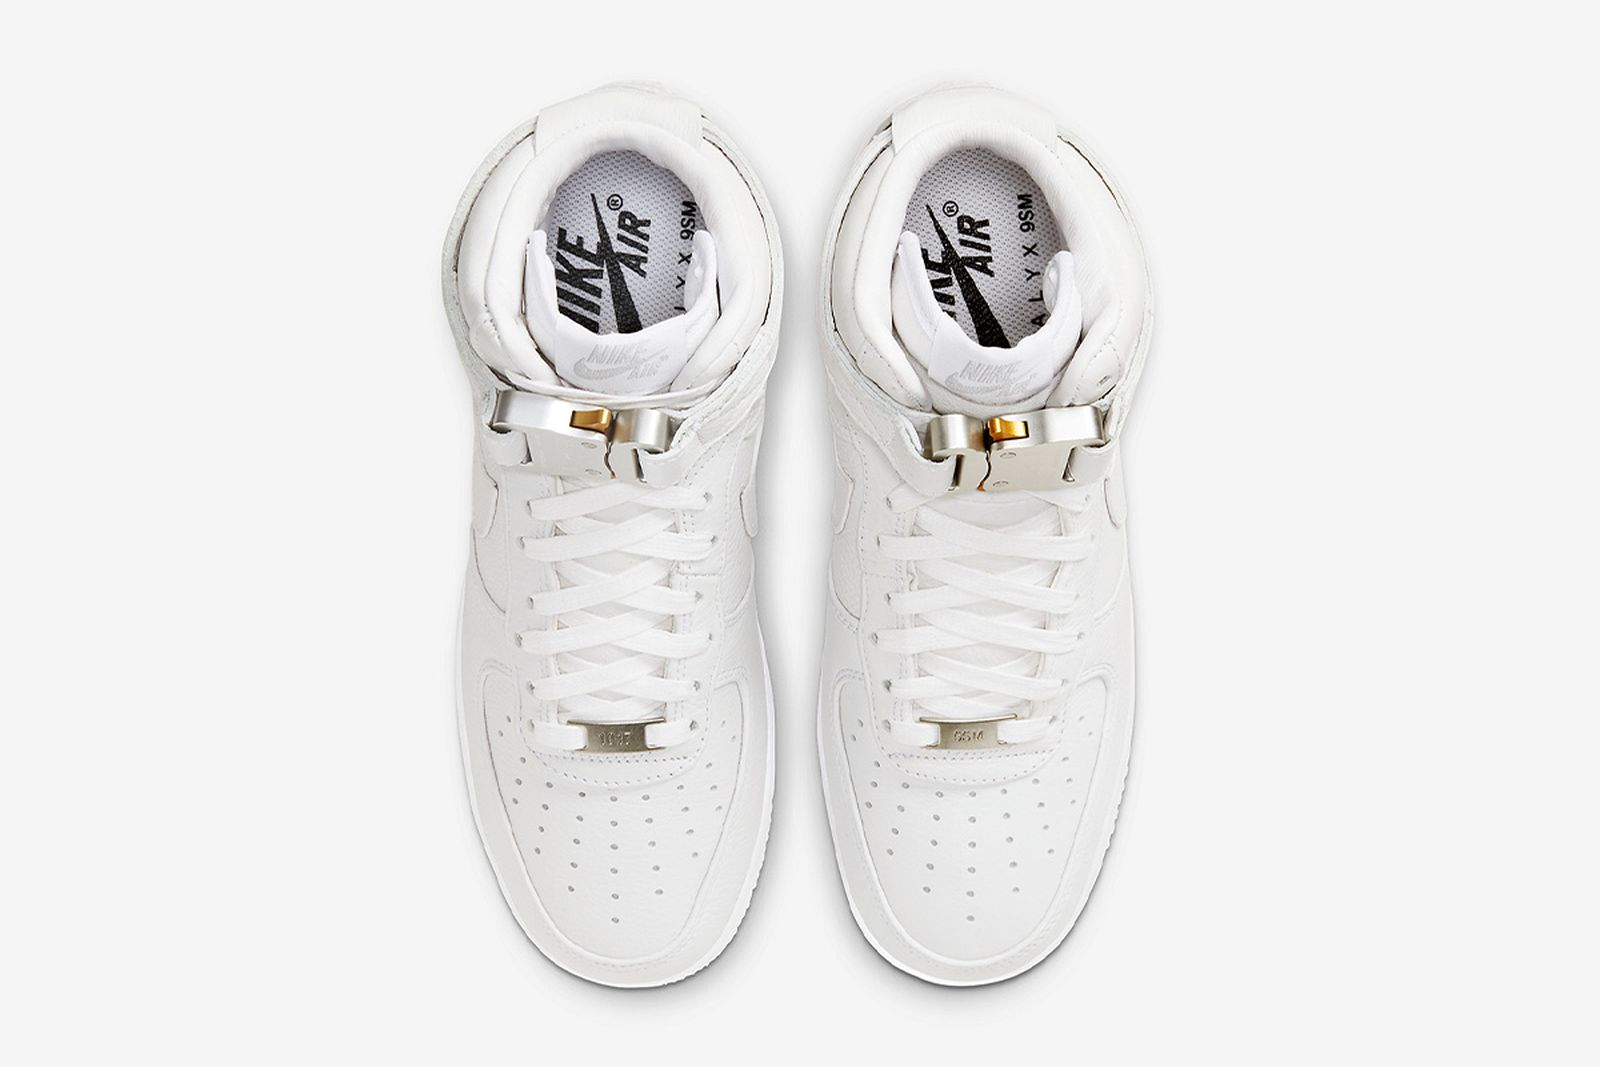 1017-alyx-9sm-nike-air-force-1-high-white-release-date-price-07